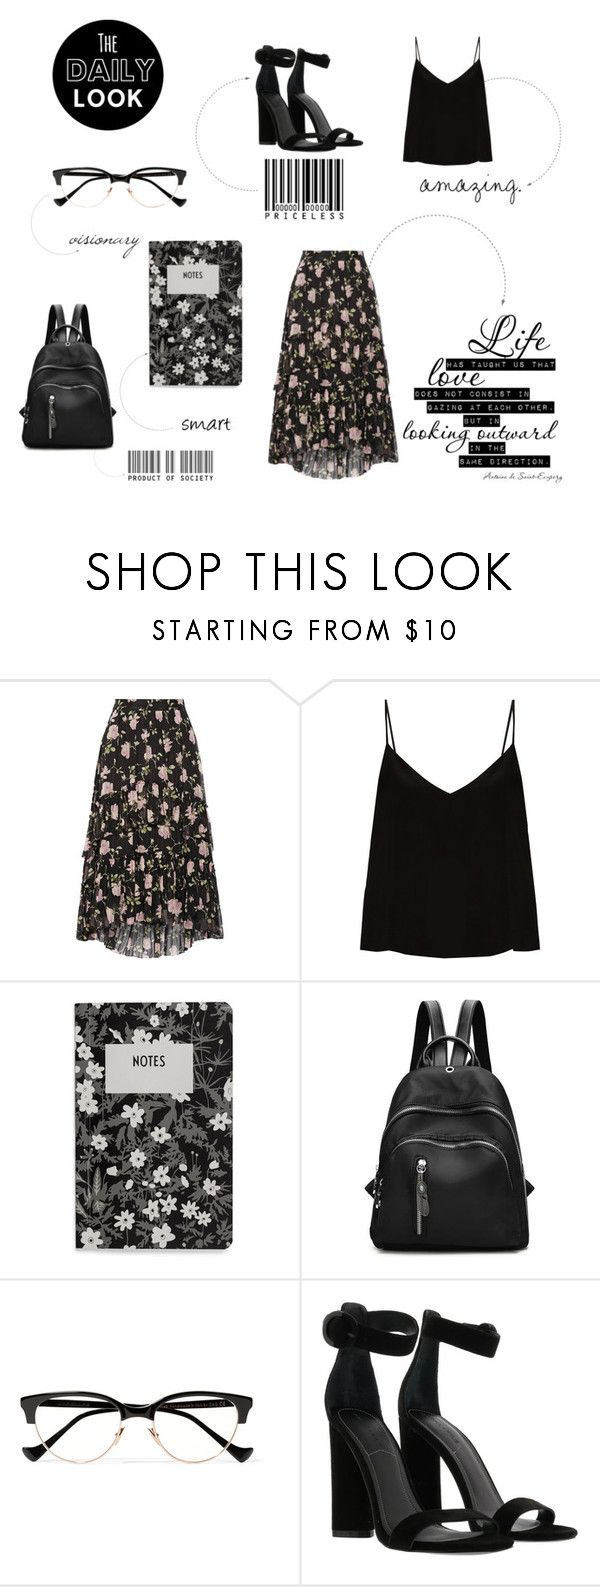 """""""College outfit"""" by maggiec003 ❤ liked on Polyvore featuring Ulla Johnson, Raey, Design Letters, Cutler and Gross, Kendall + Kylie and allblackoutfit"""